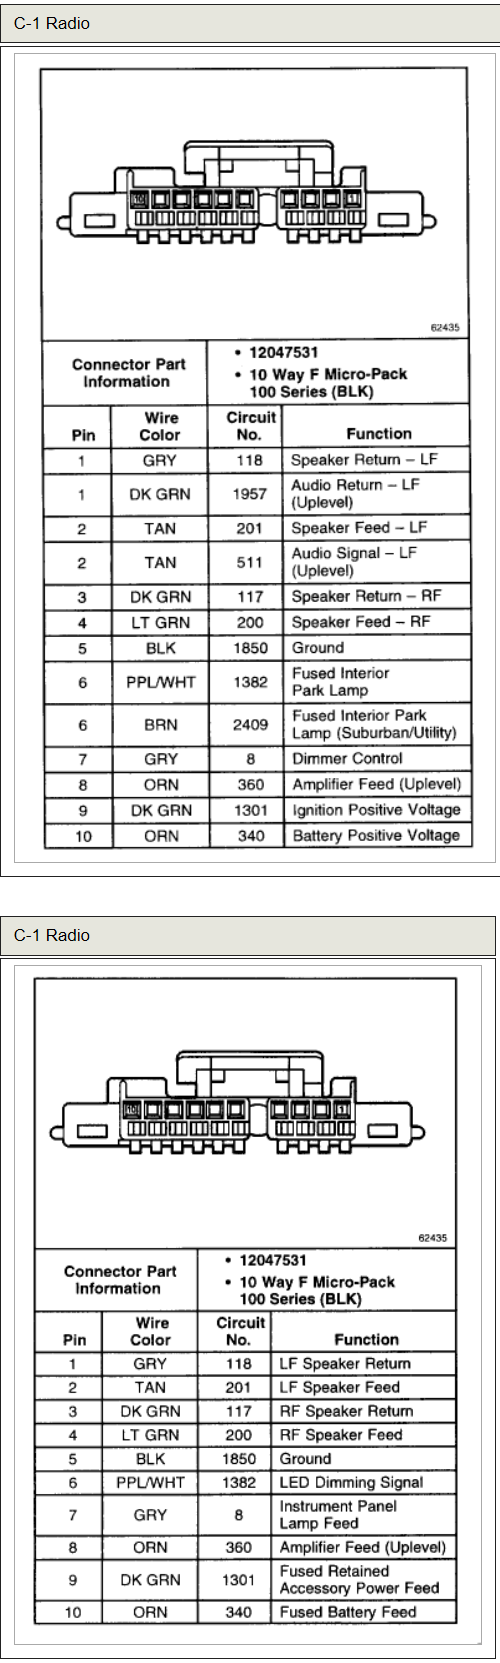 Chevrolet Tahoe LS 2000 stereo wiring connector 2 chevrolet car radio stereo audio wiring diagram autoradio wiring diagram for 2001 chevy venture at virtualis.co